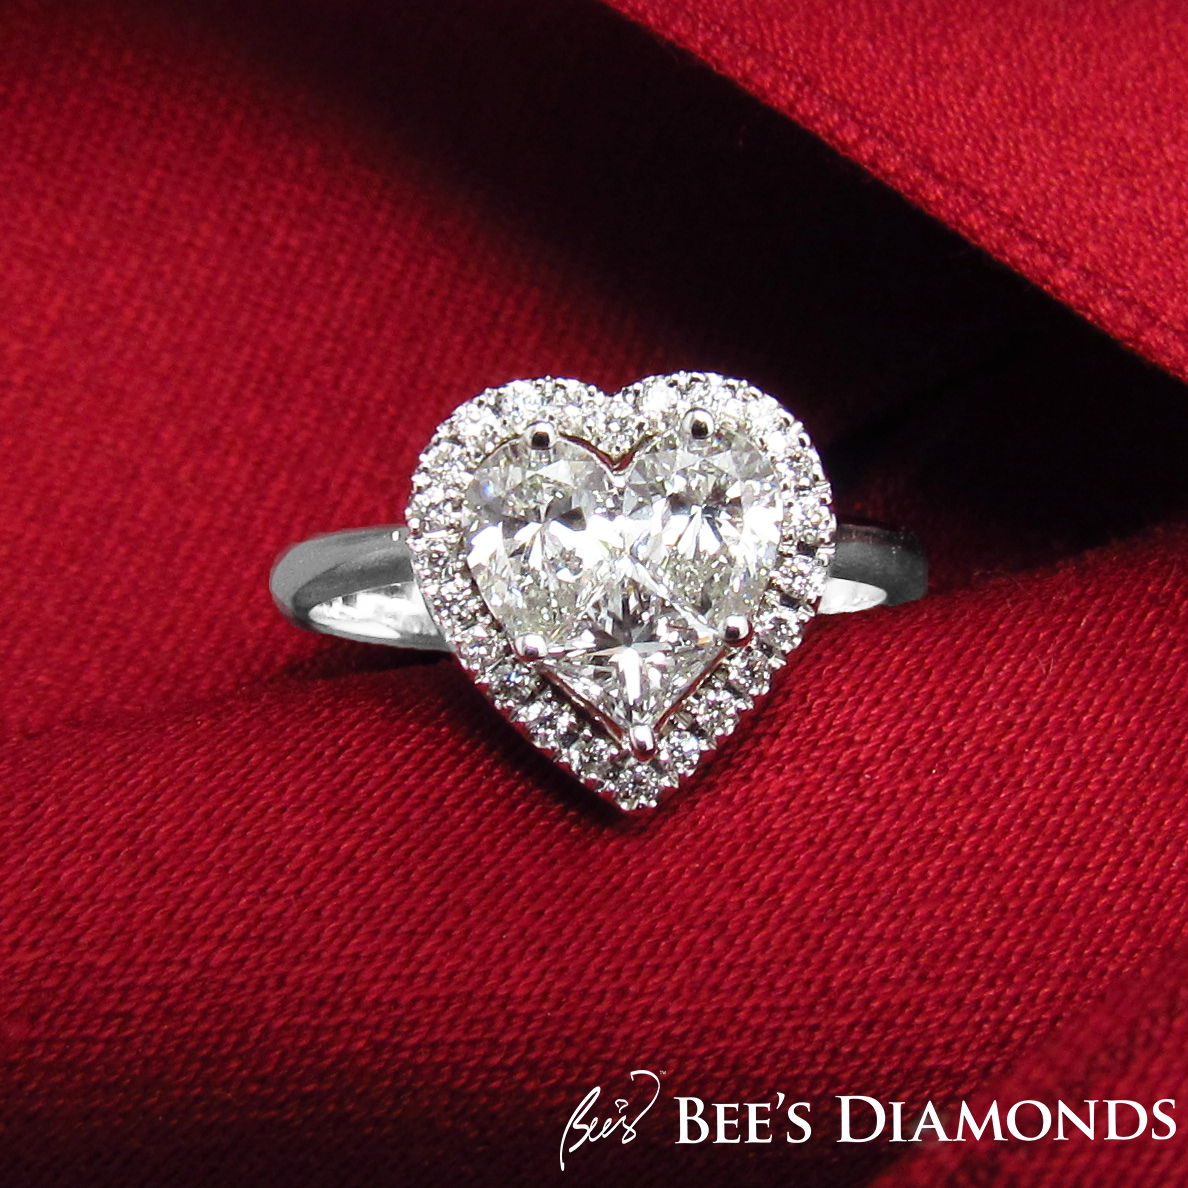 Invisible setting, heart shaped diamond ring with halo